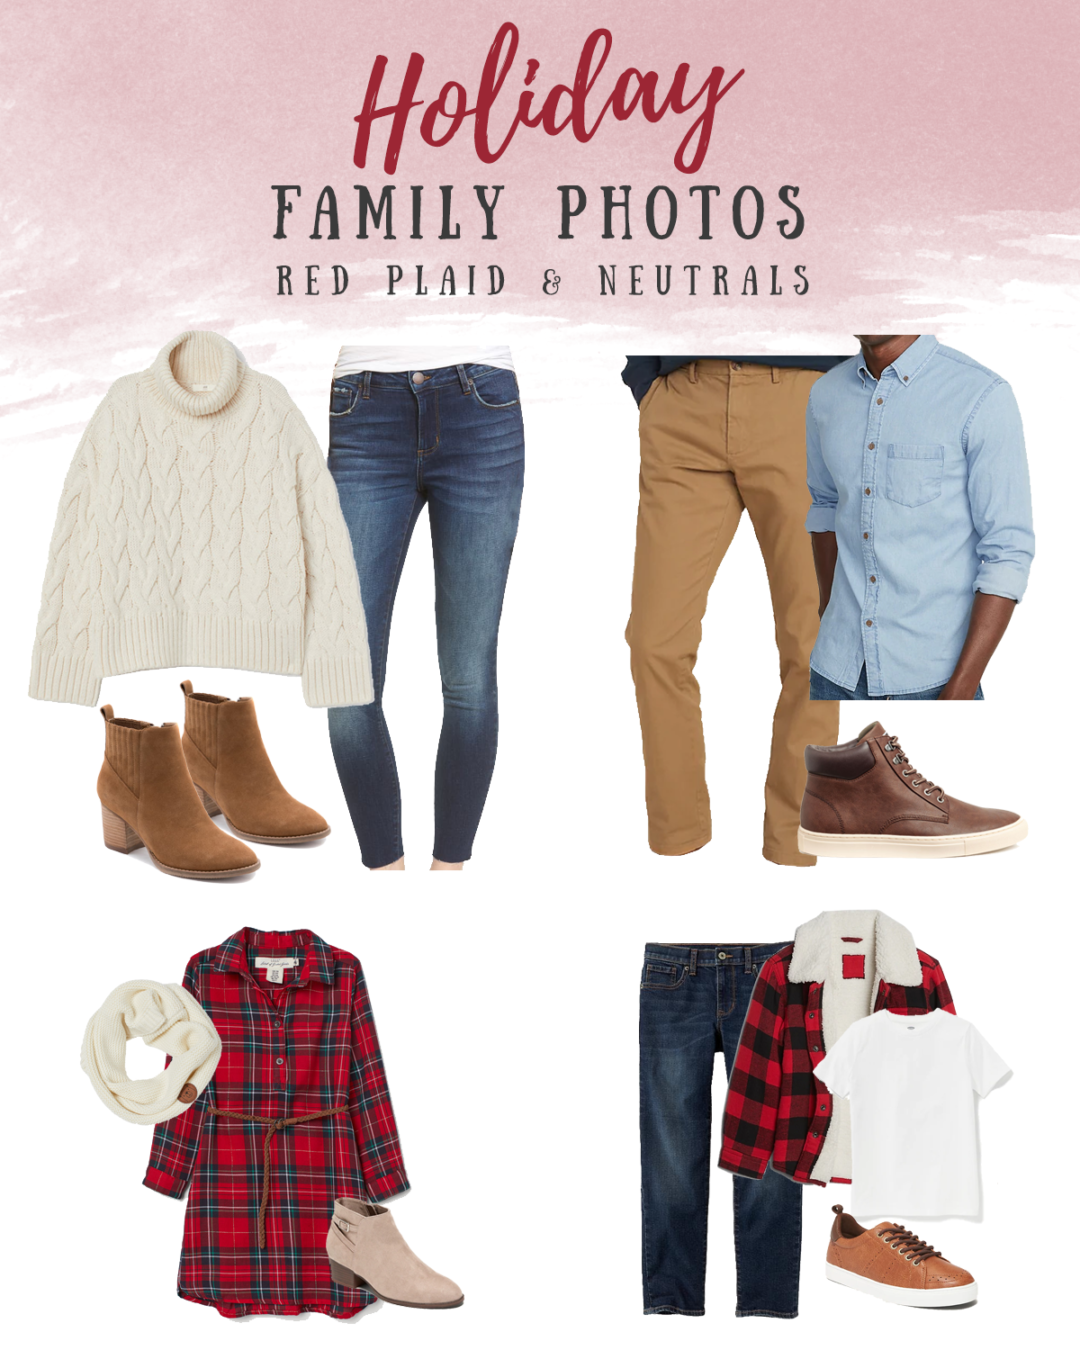 Holiday photo outfit ideas for the family - neutral cream and blue denim outfits theme